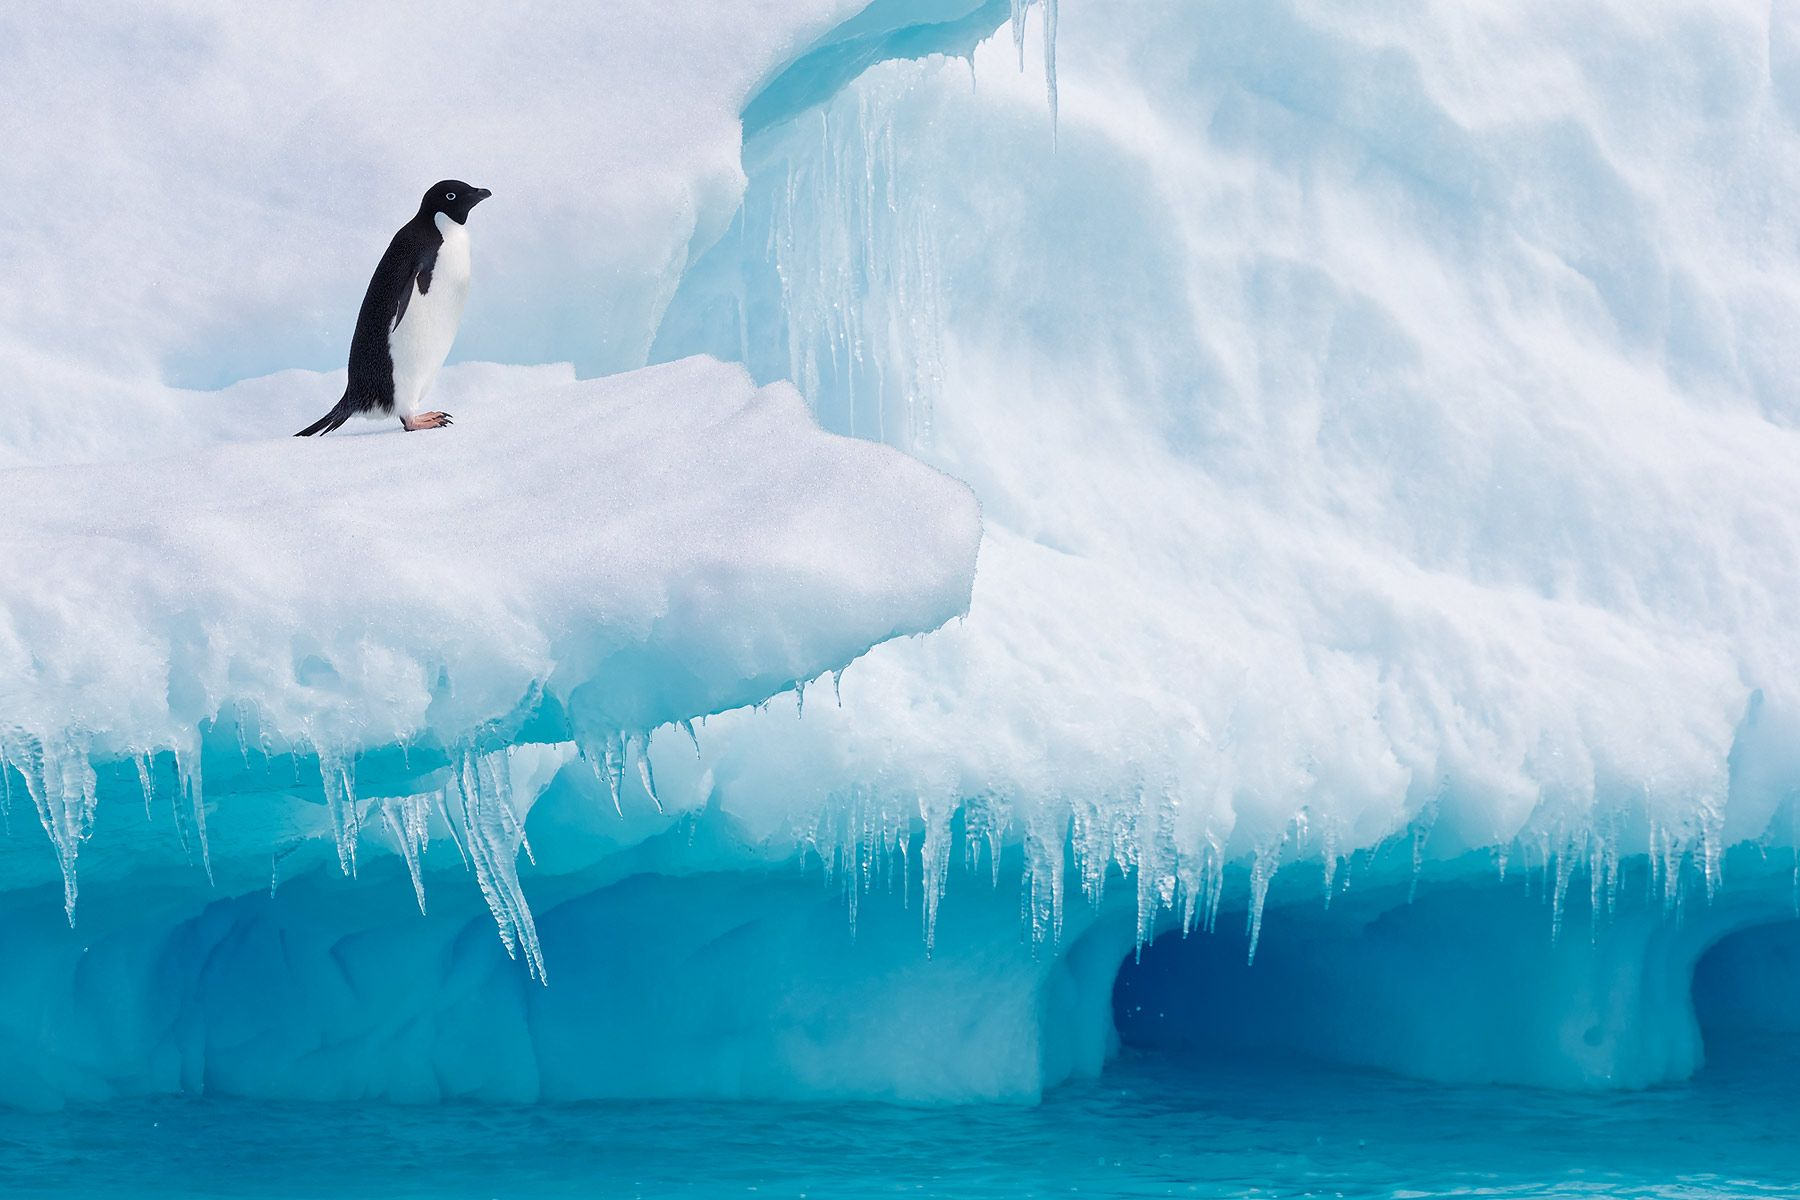 Adelie-Penguin-on-iceberg-ledge-with-blue-ice-and-water_E7T1711-Detaille-lsland,-Antarctica.jpg